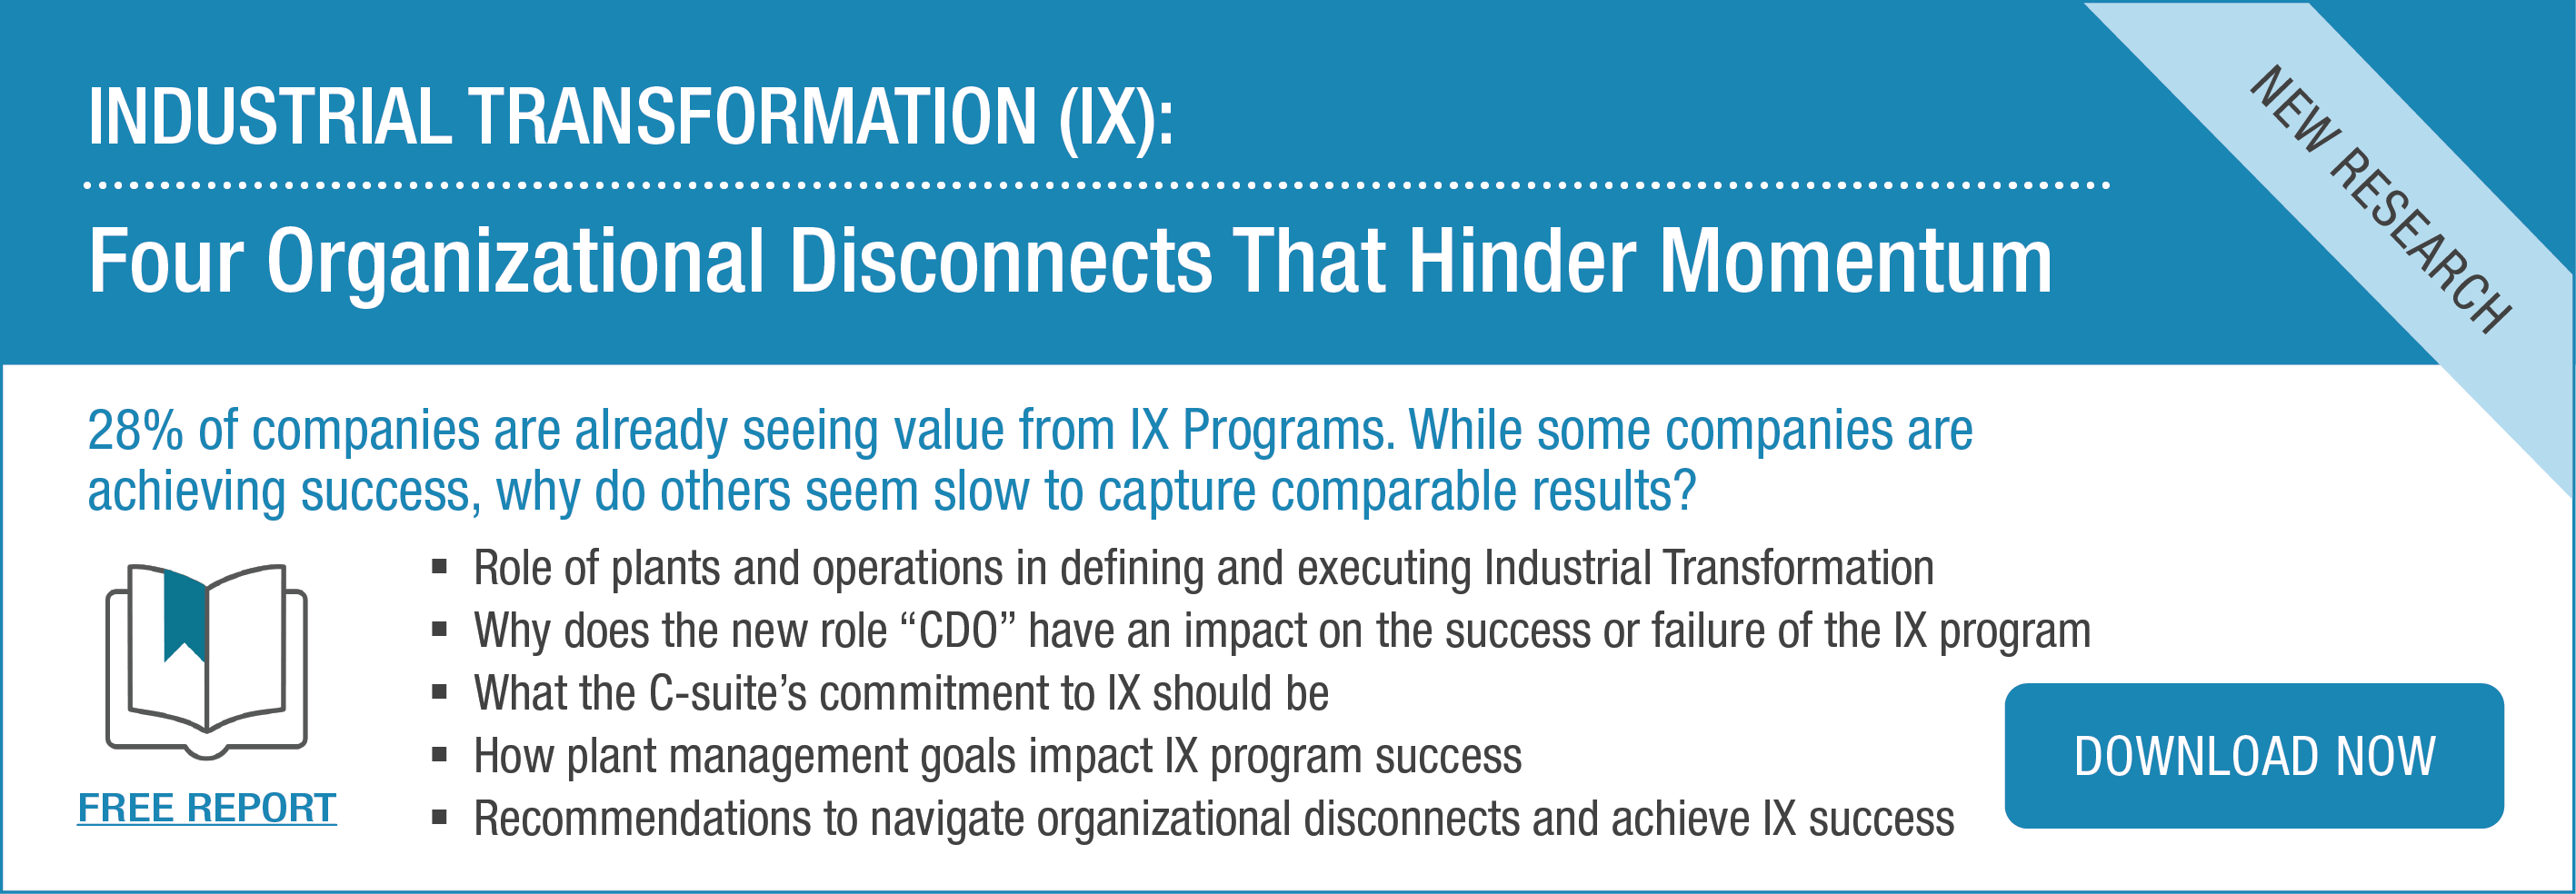 Spotlight | Industrial Transformation (IX): Four Organizational Disconnects That Hinder Momentum